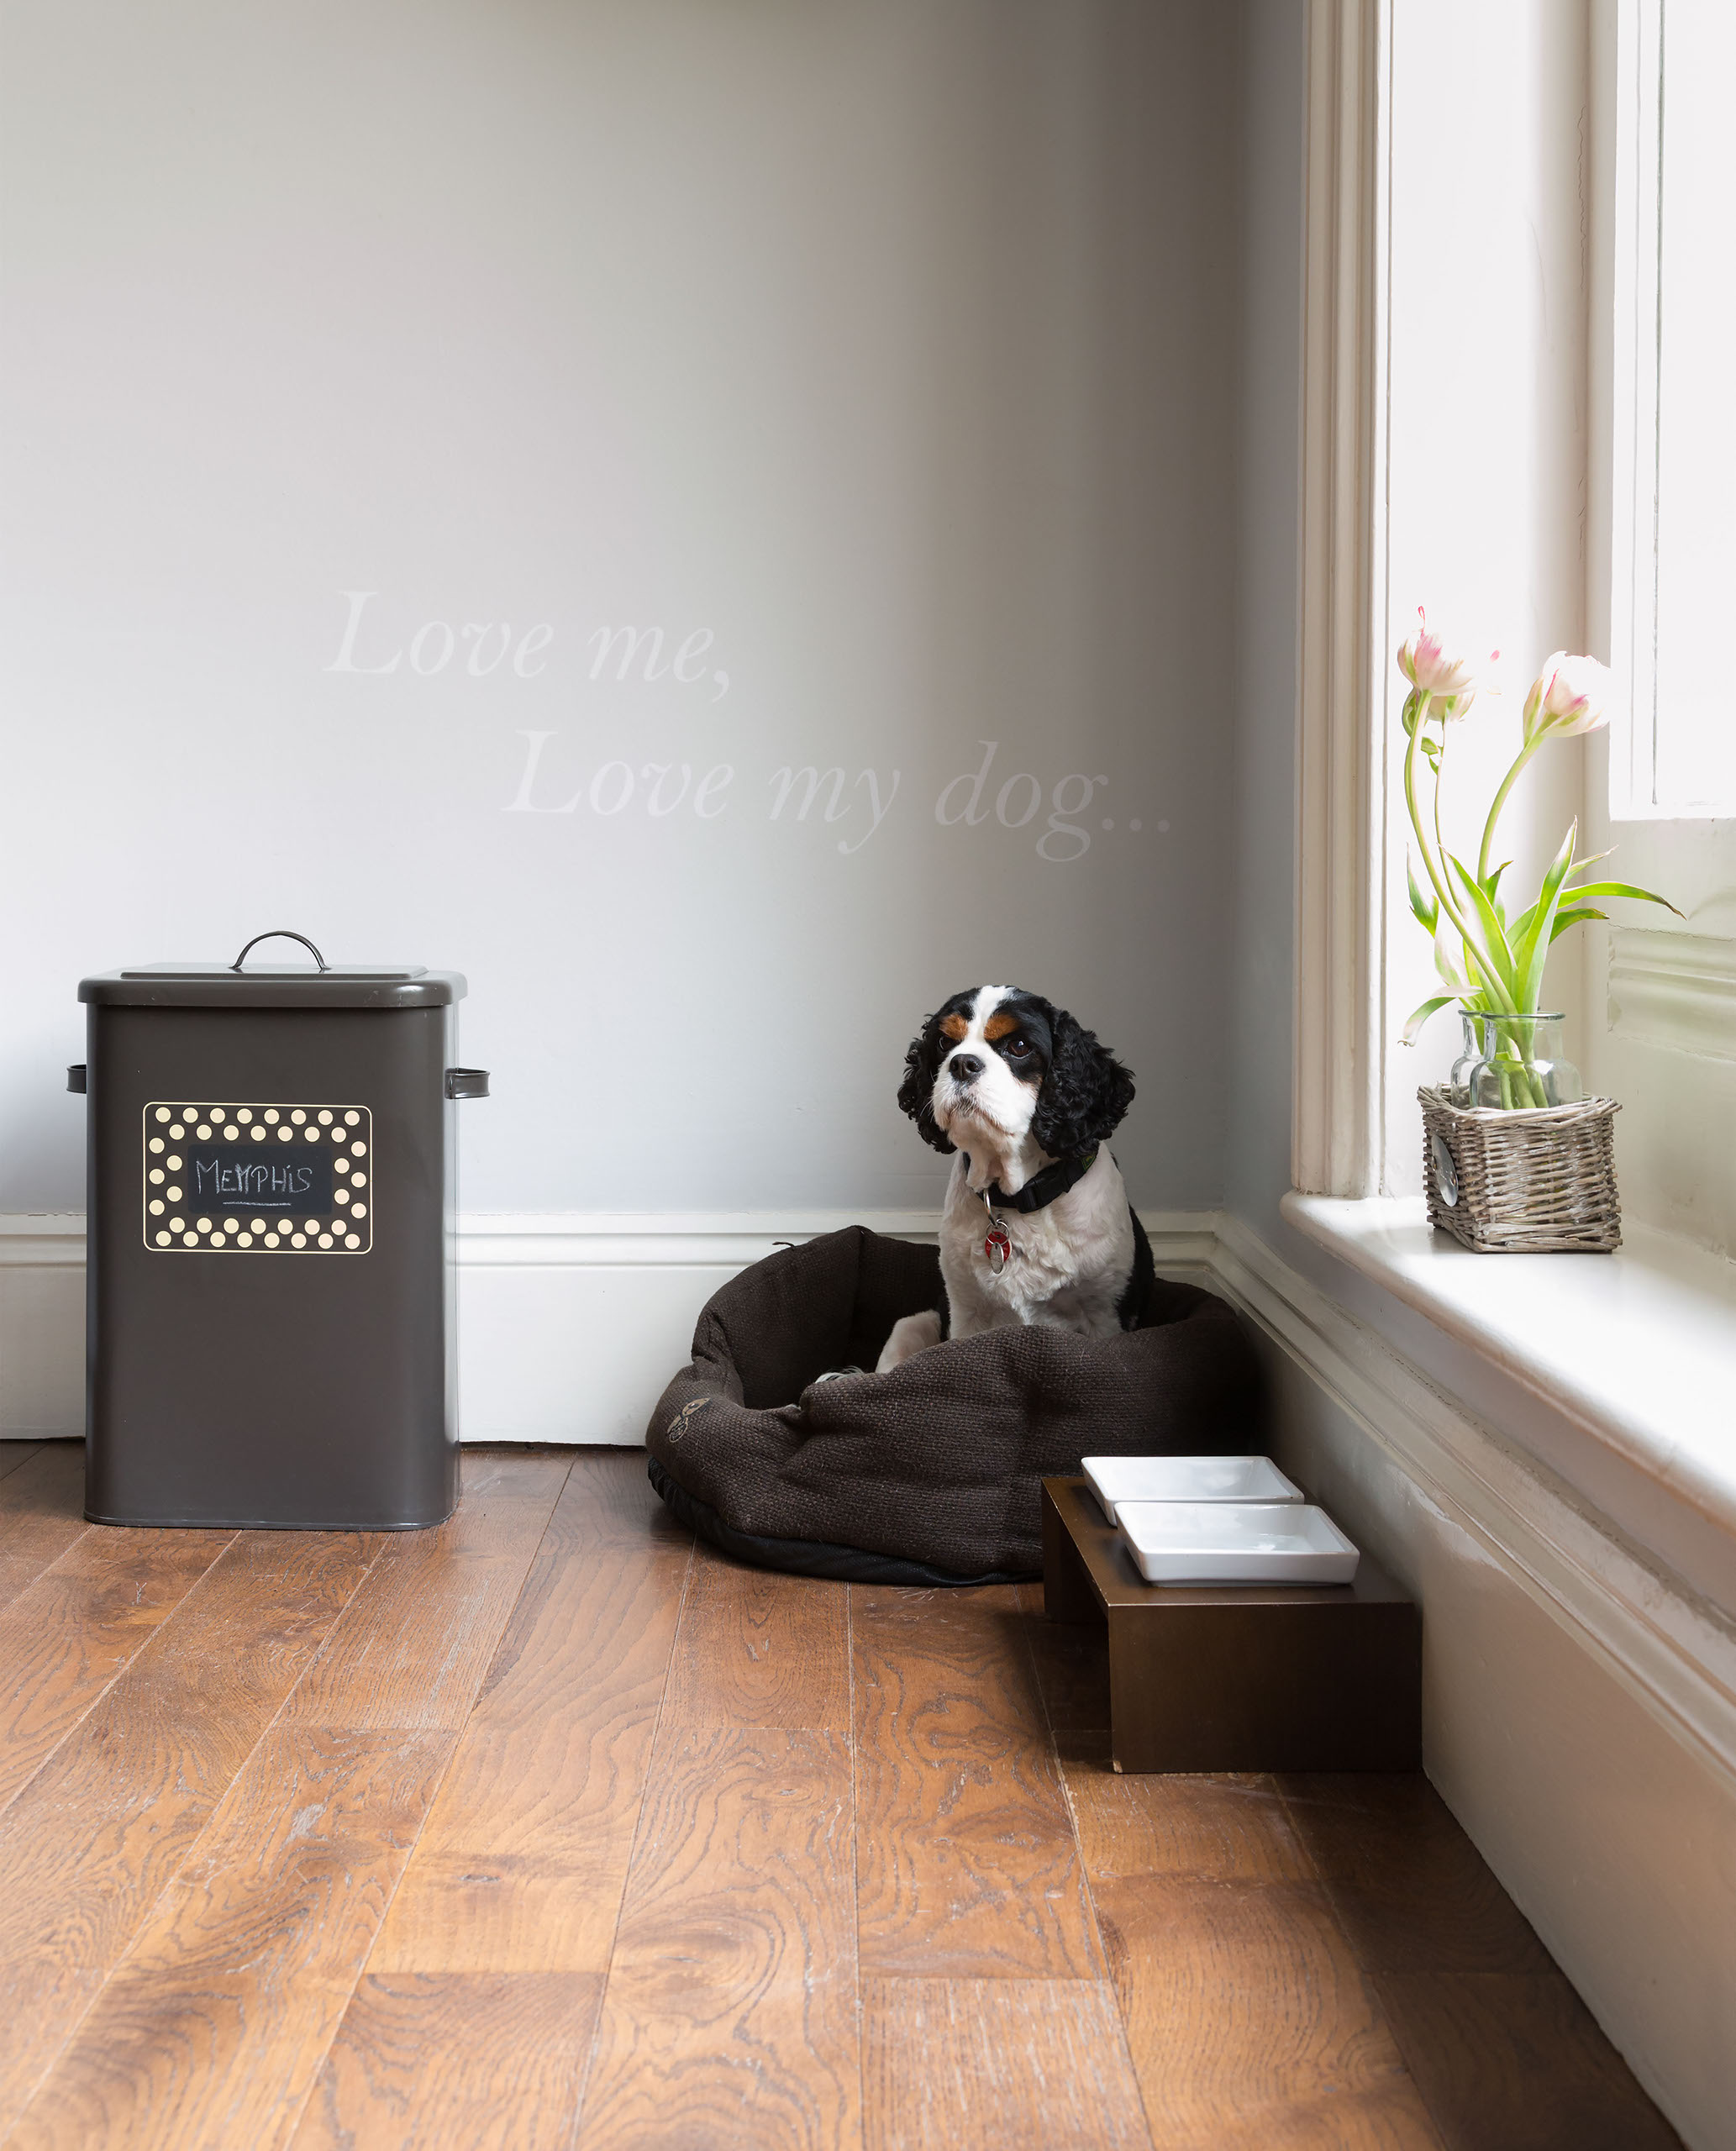 Paul Craig Interior Photographer London, People Photography, Dog in basket